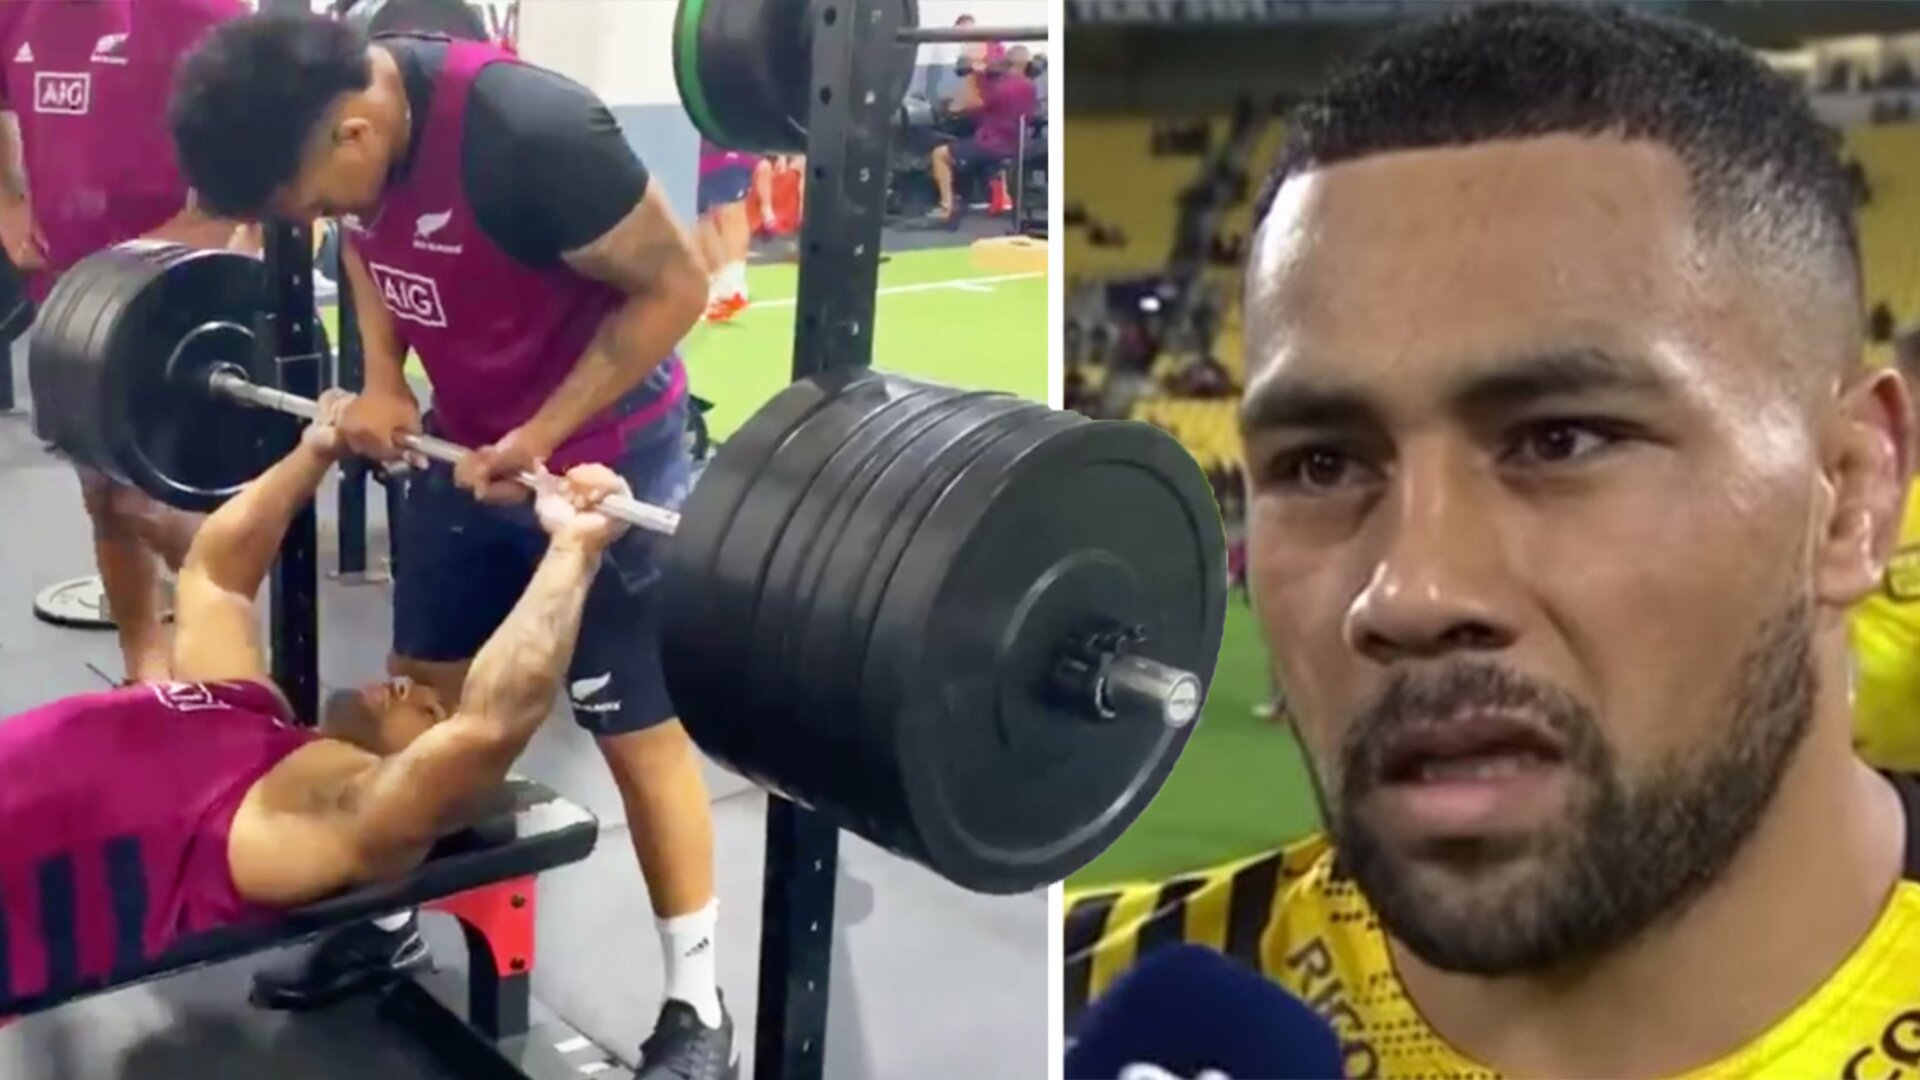 The incredible weight that Ngani Laumape is lifting in the gym for the All Blacks